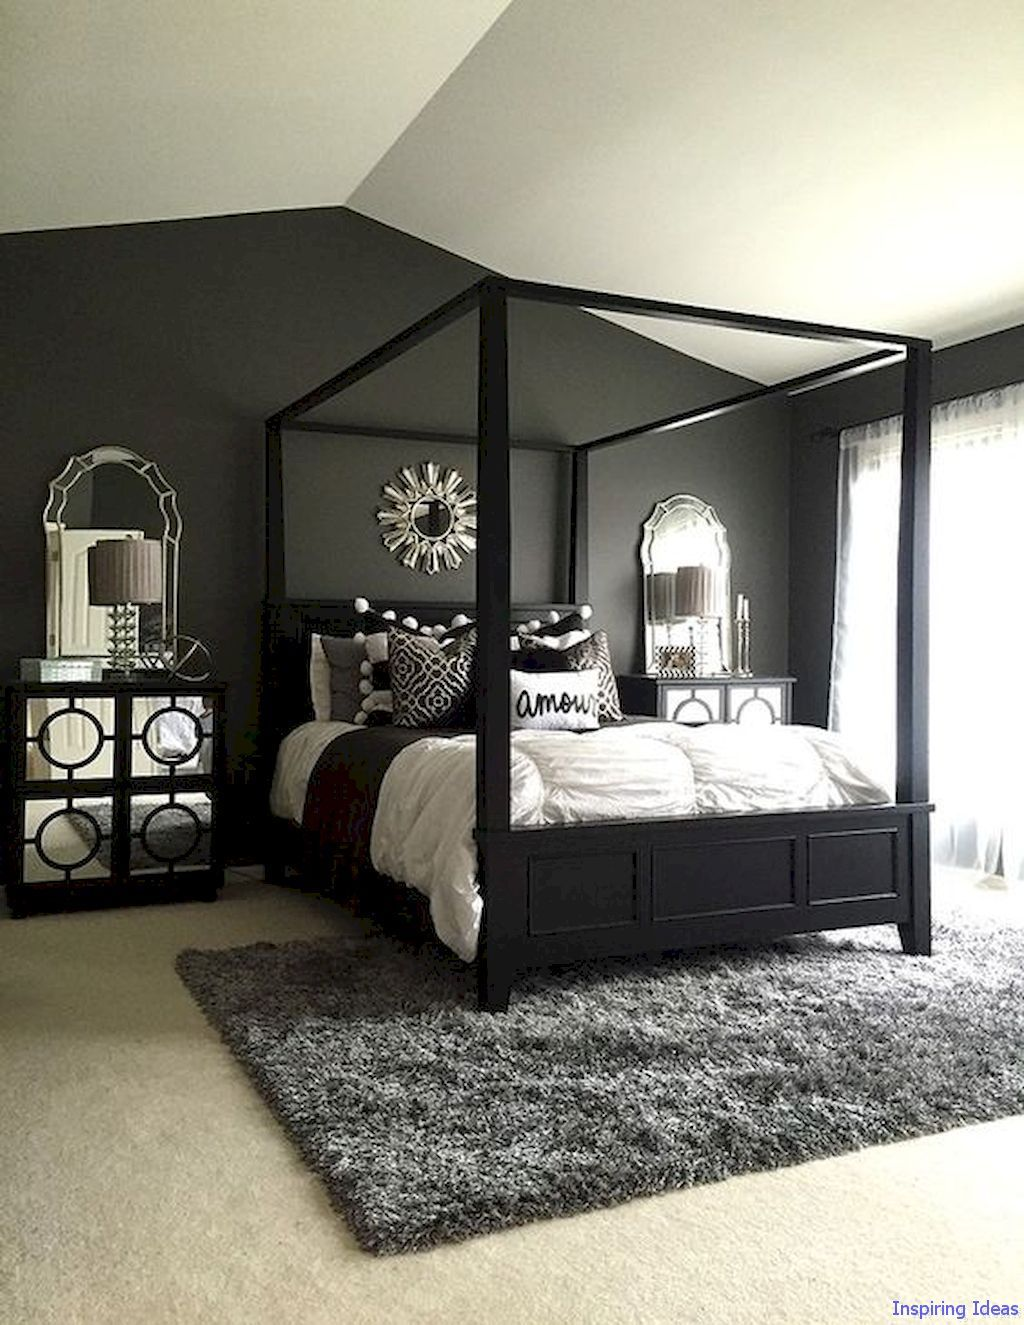 85 Super Cozy Bedroom Ideas To Inspire You